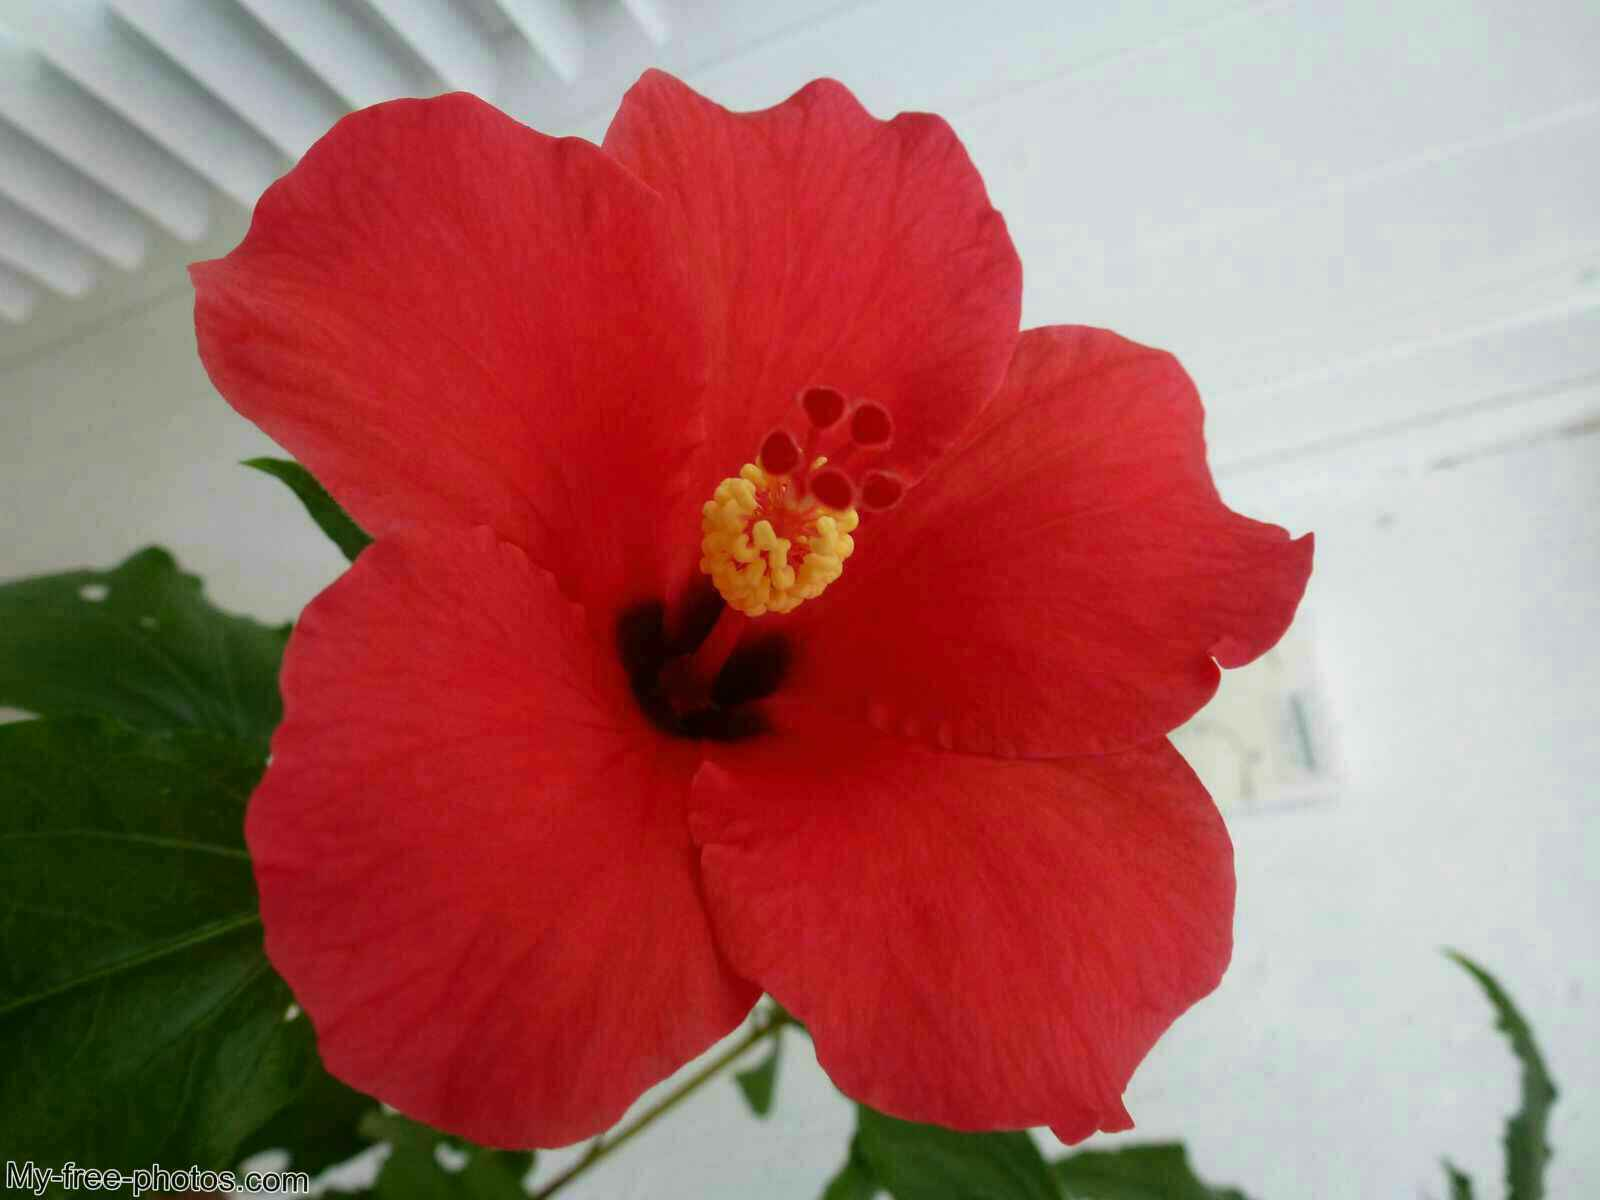 Hibiscus. Red